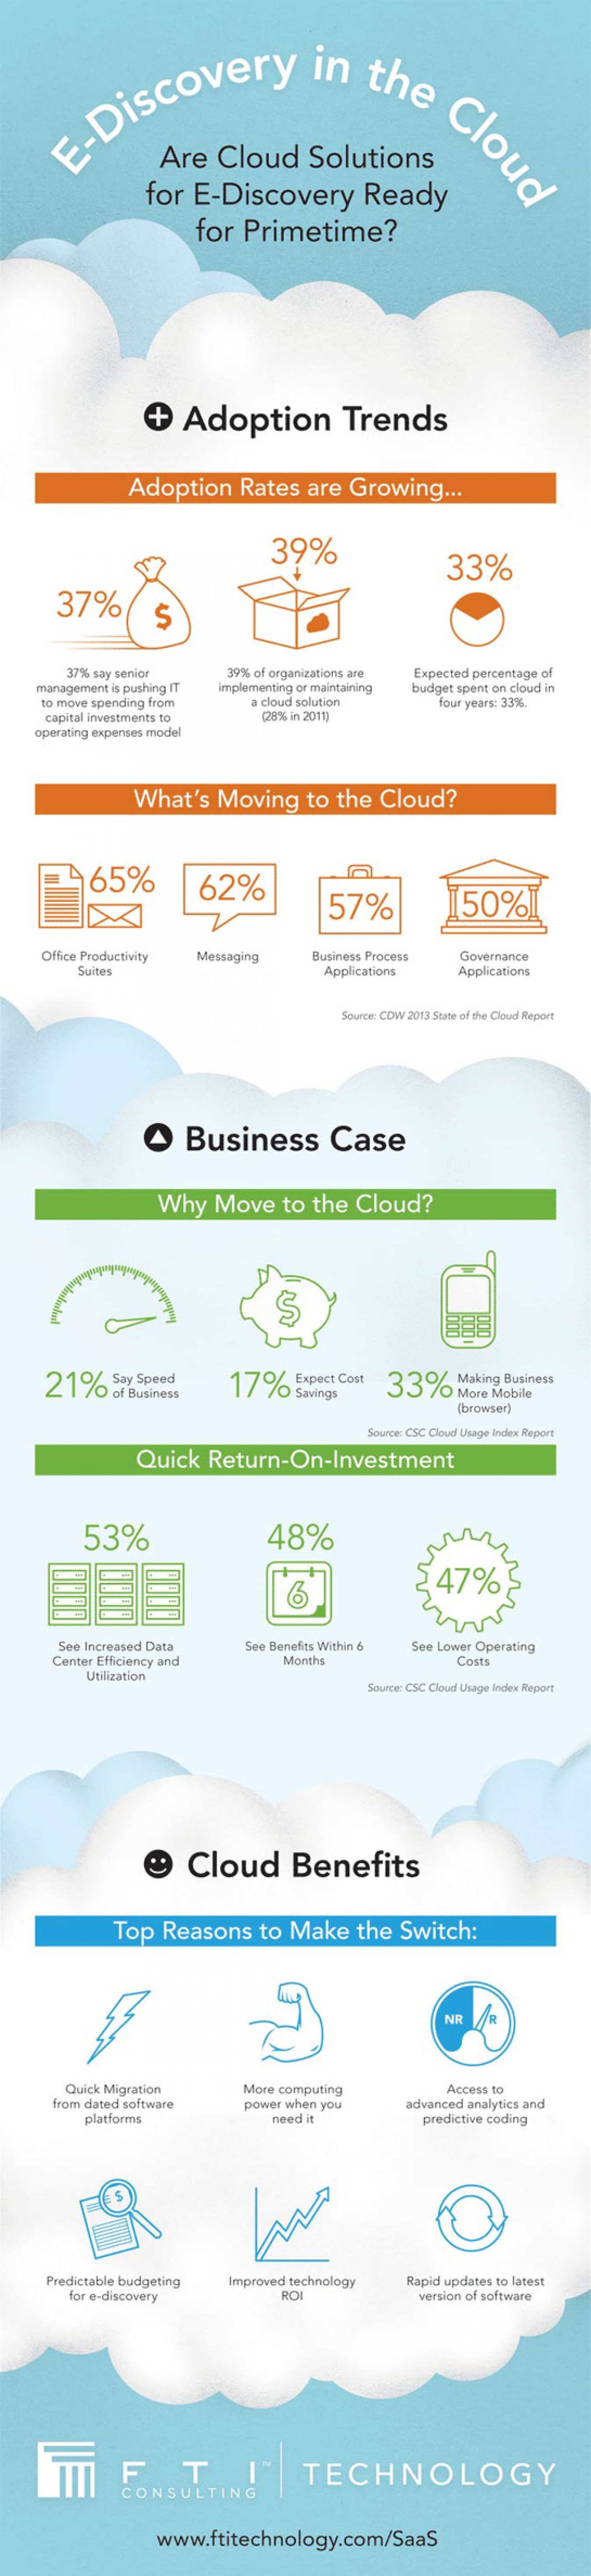 E-Discovery in the Cloud Infographic